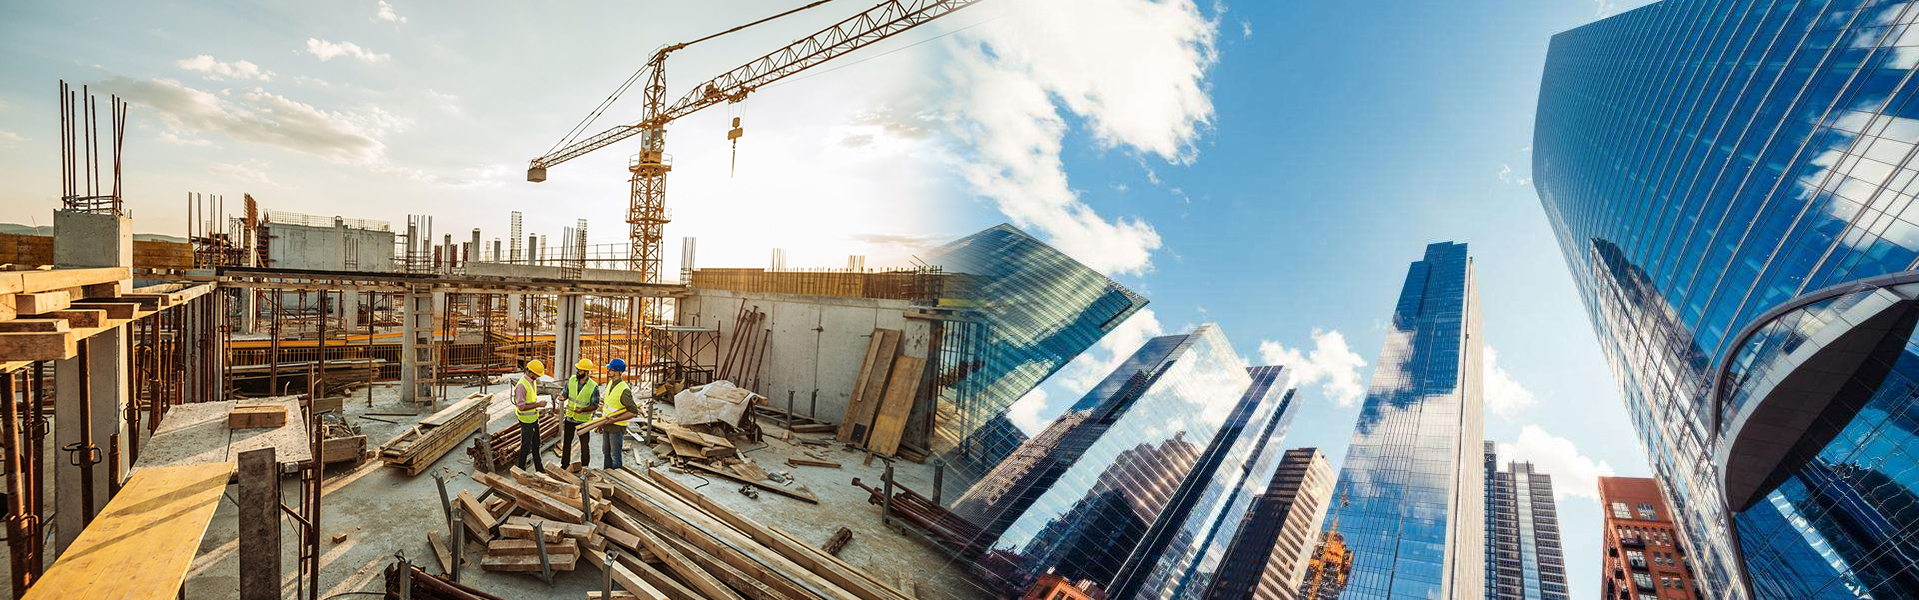 3dexperience for the construction industry